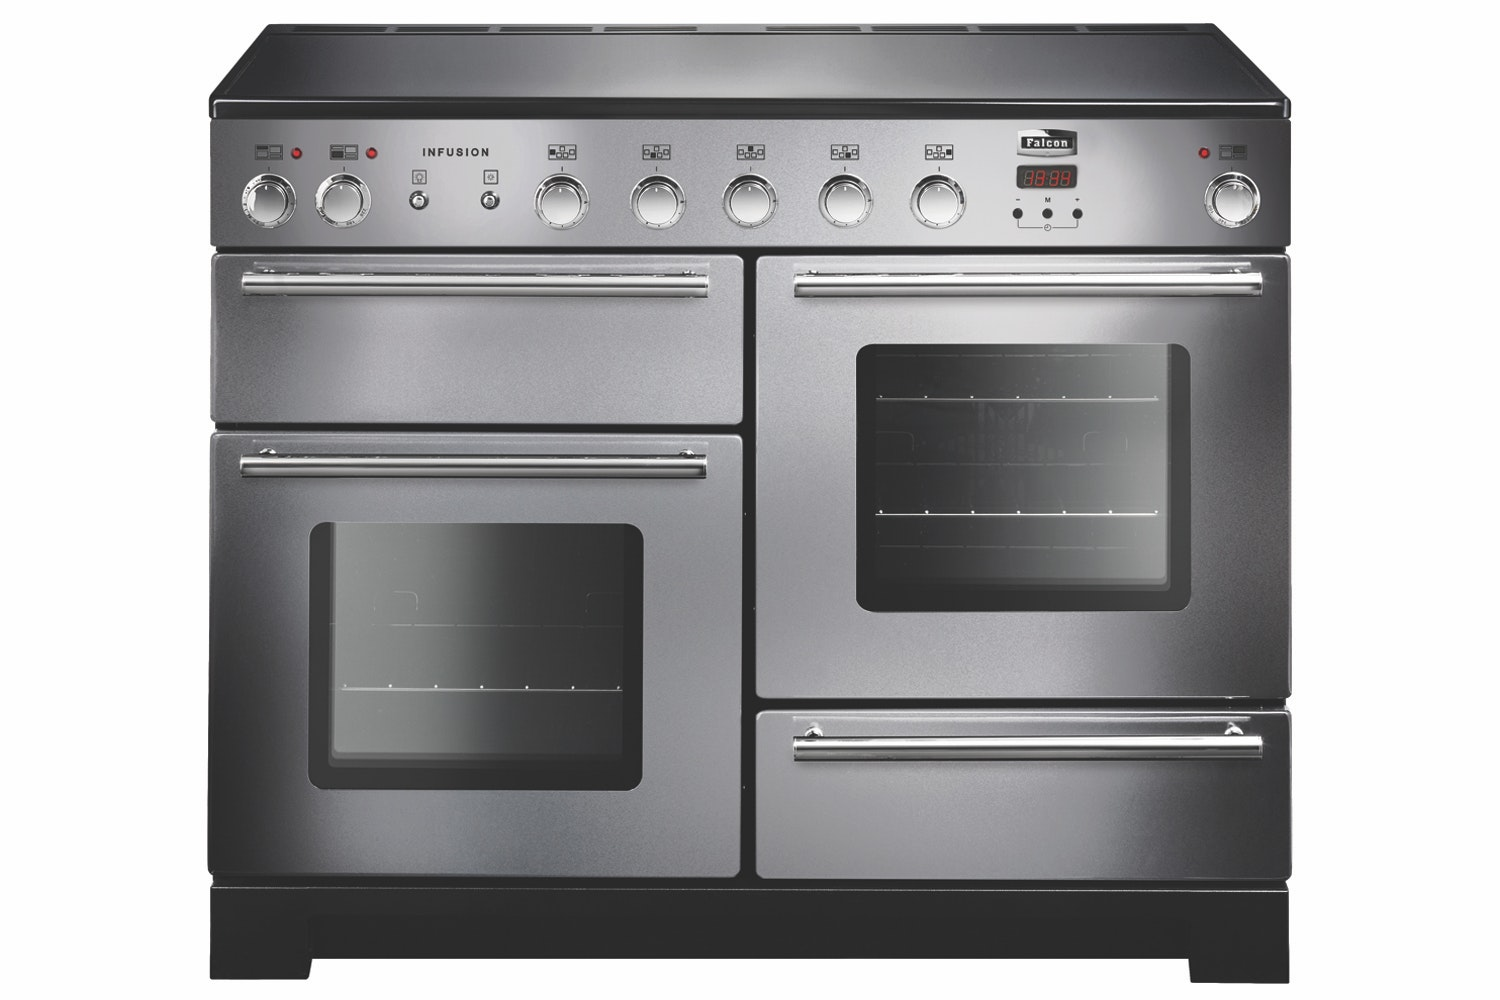 Rangemaster Infusion 110cm Electric Range Cooker | INF110EISS | Stainless Steel